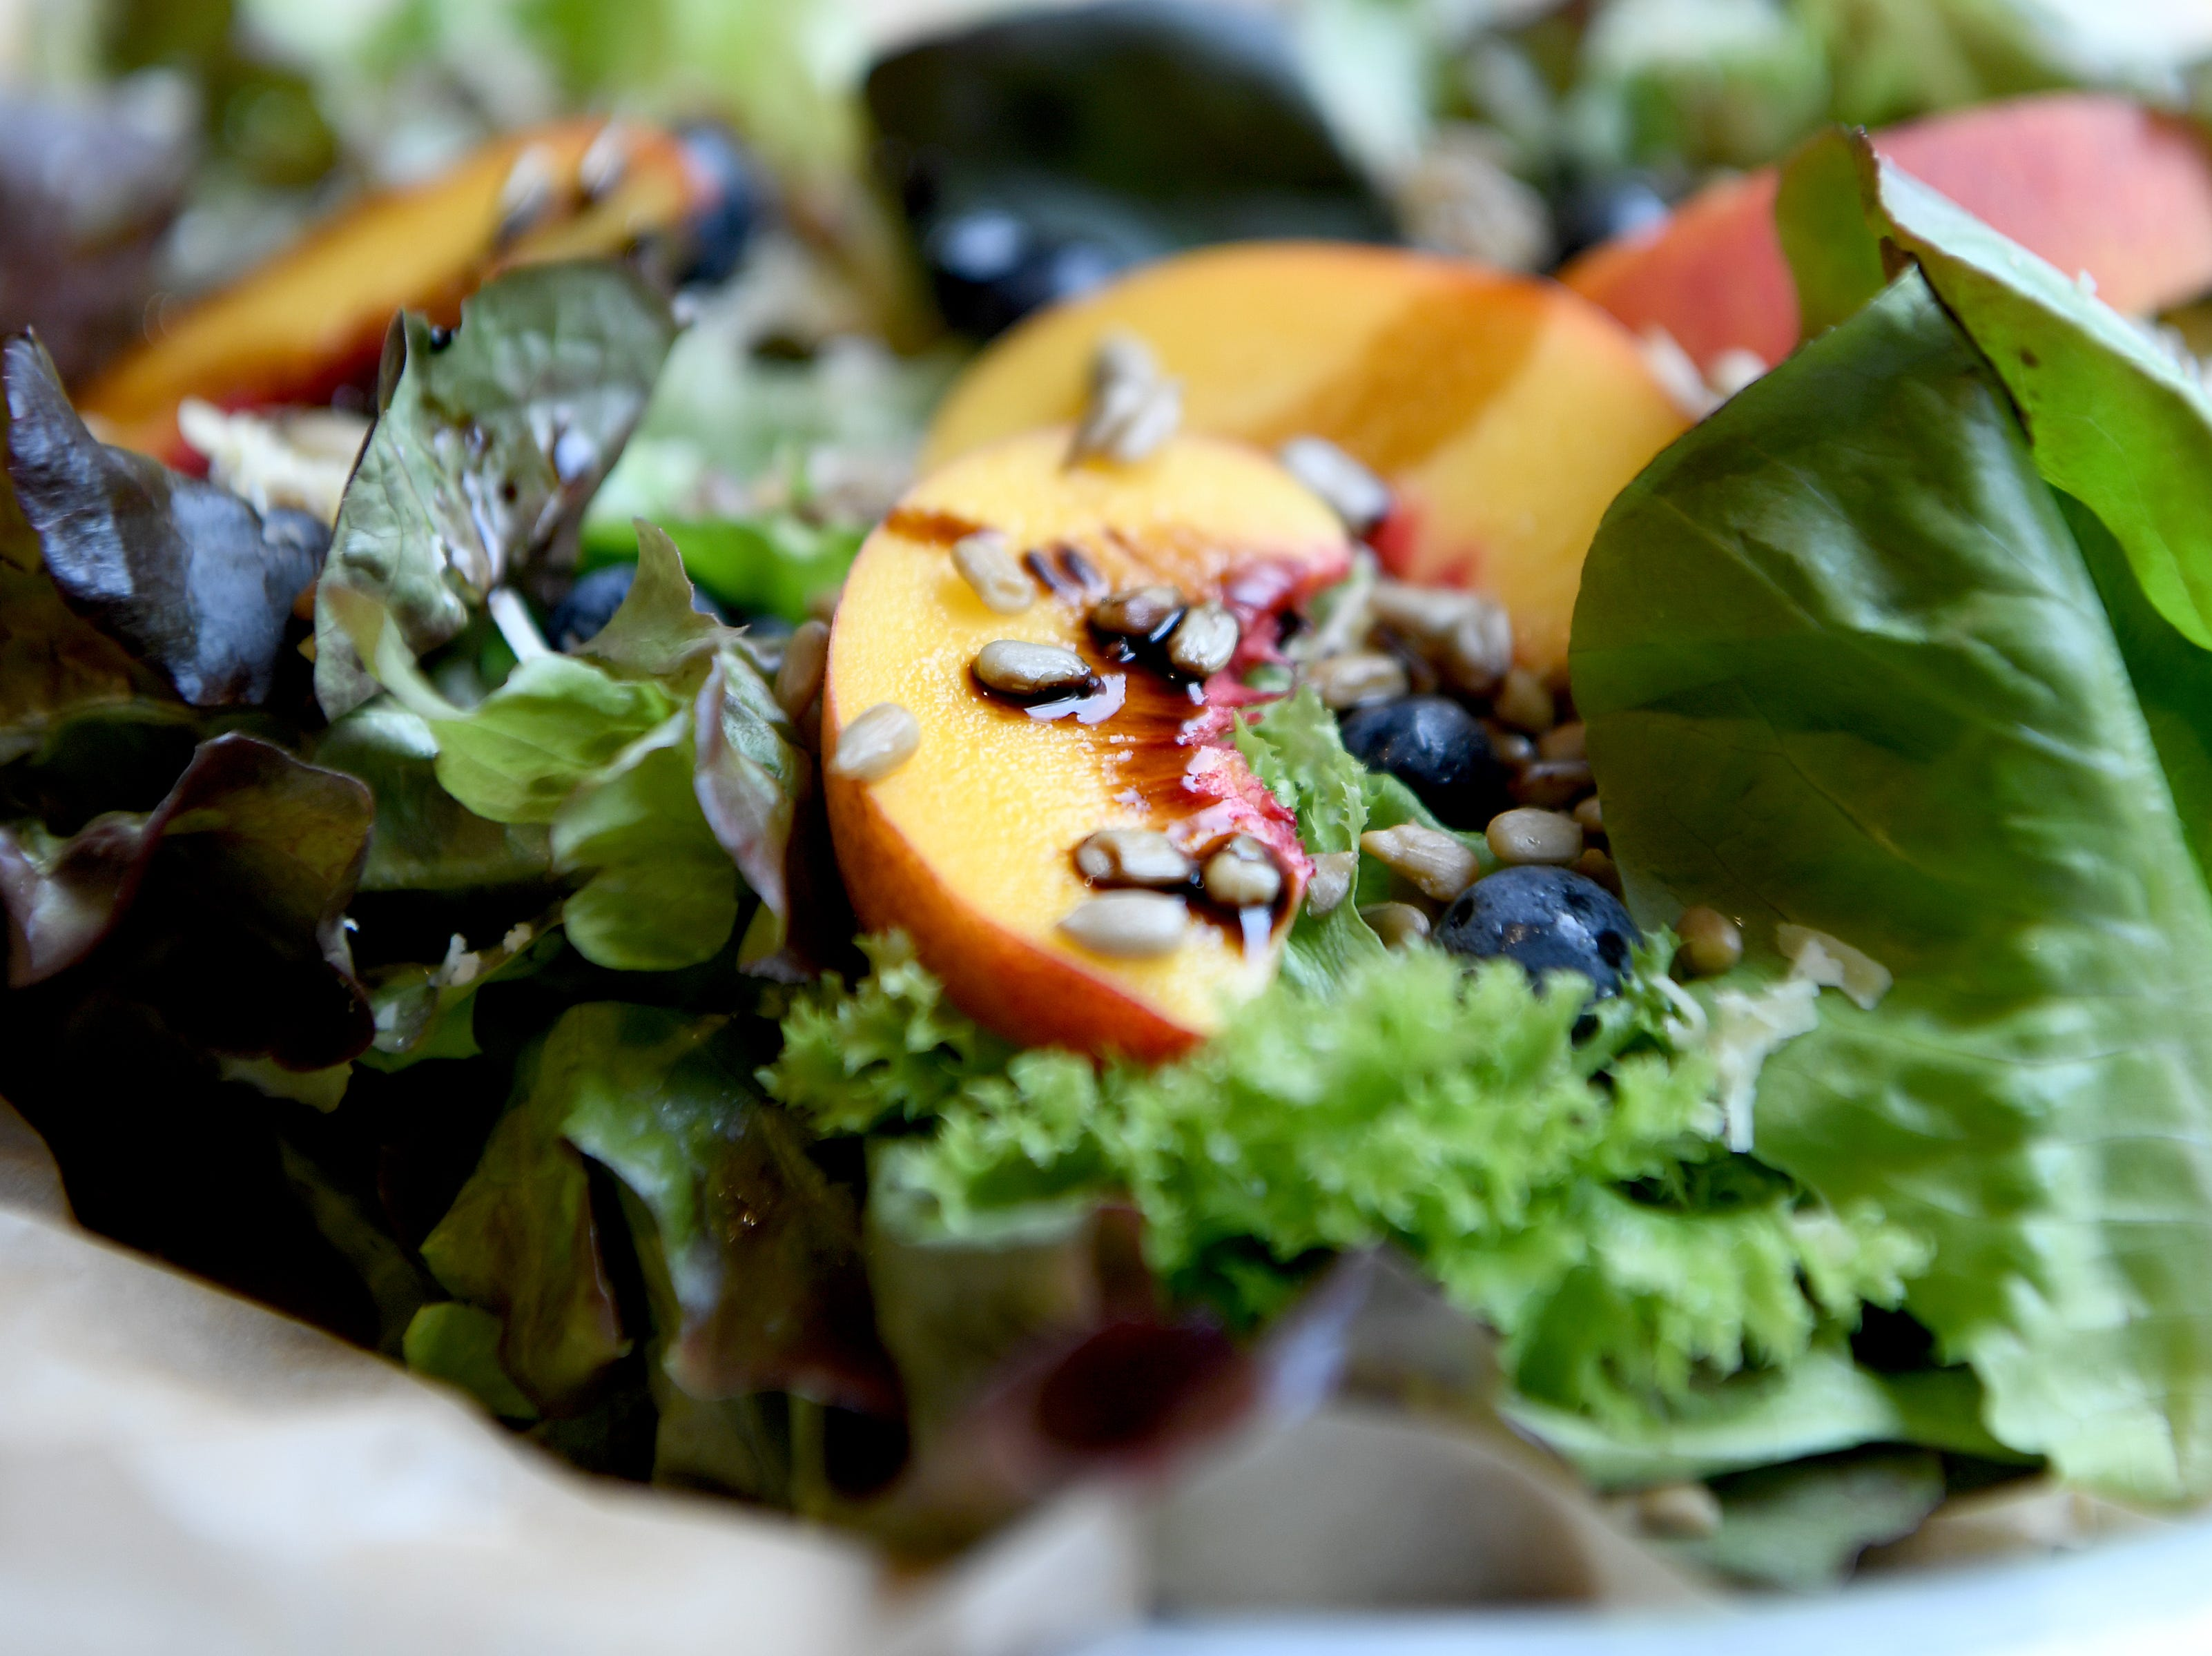 The farmers salad at HomeGrown West has mixed Greens, peaches, farmstead cheese, sunflower seeds and is topped with a balsamic reduction.